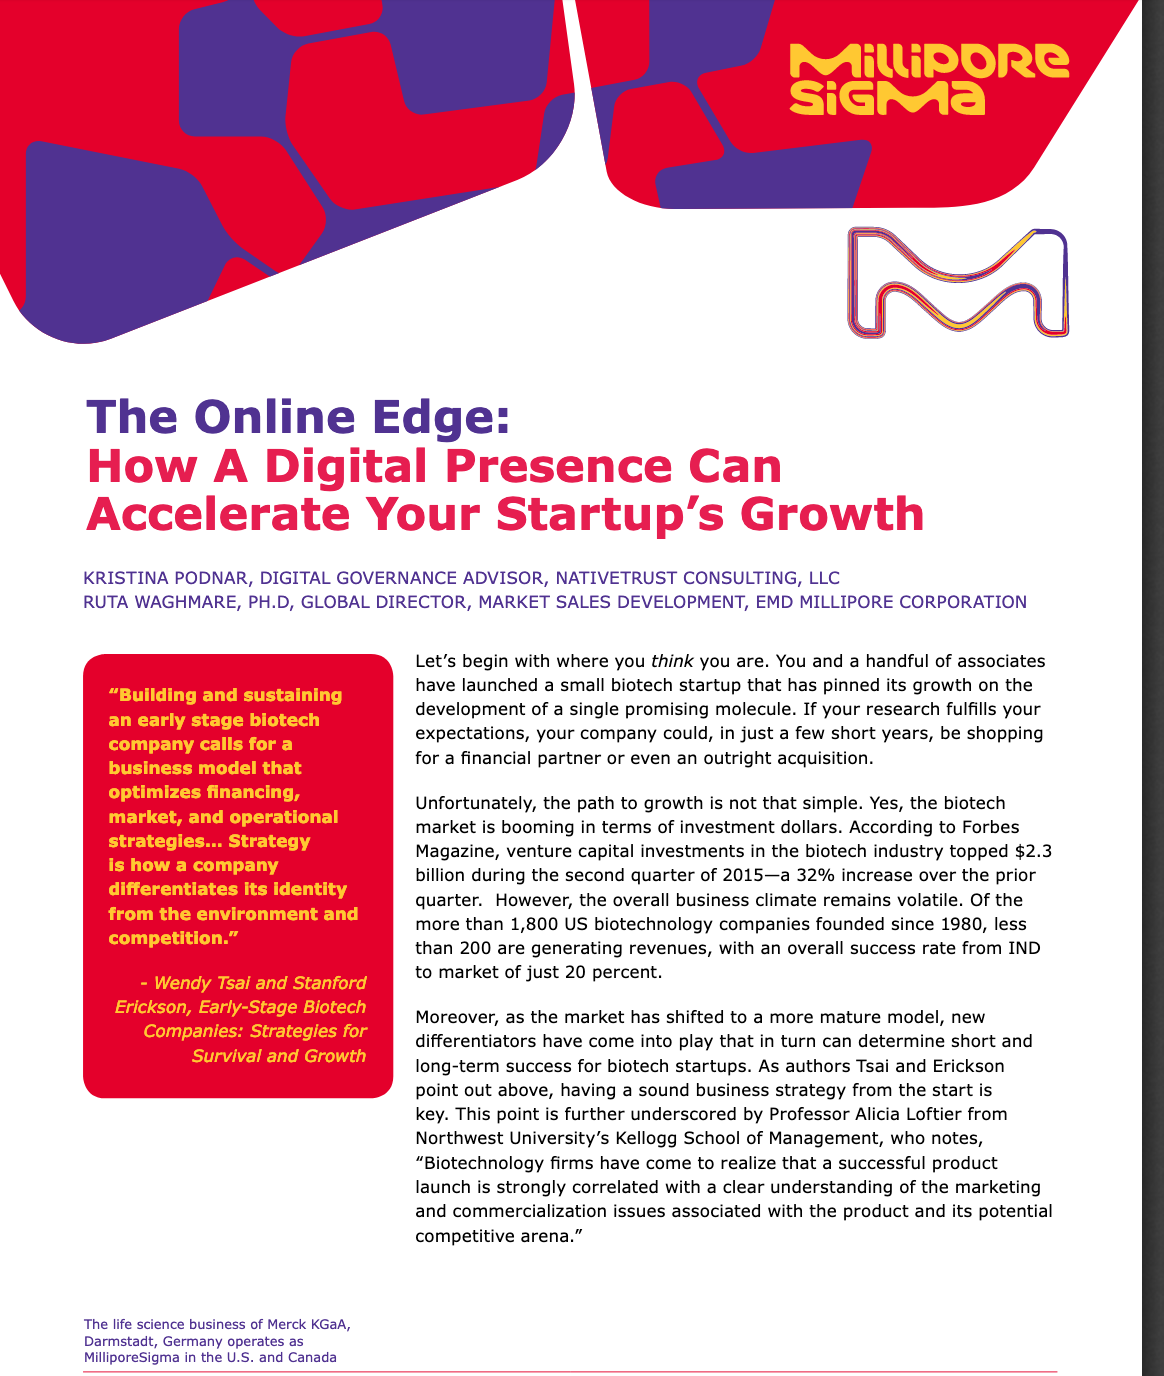 The Online Edge:  How A Digital Presence Can Accelerate Your Startup's Growth